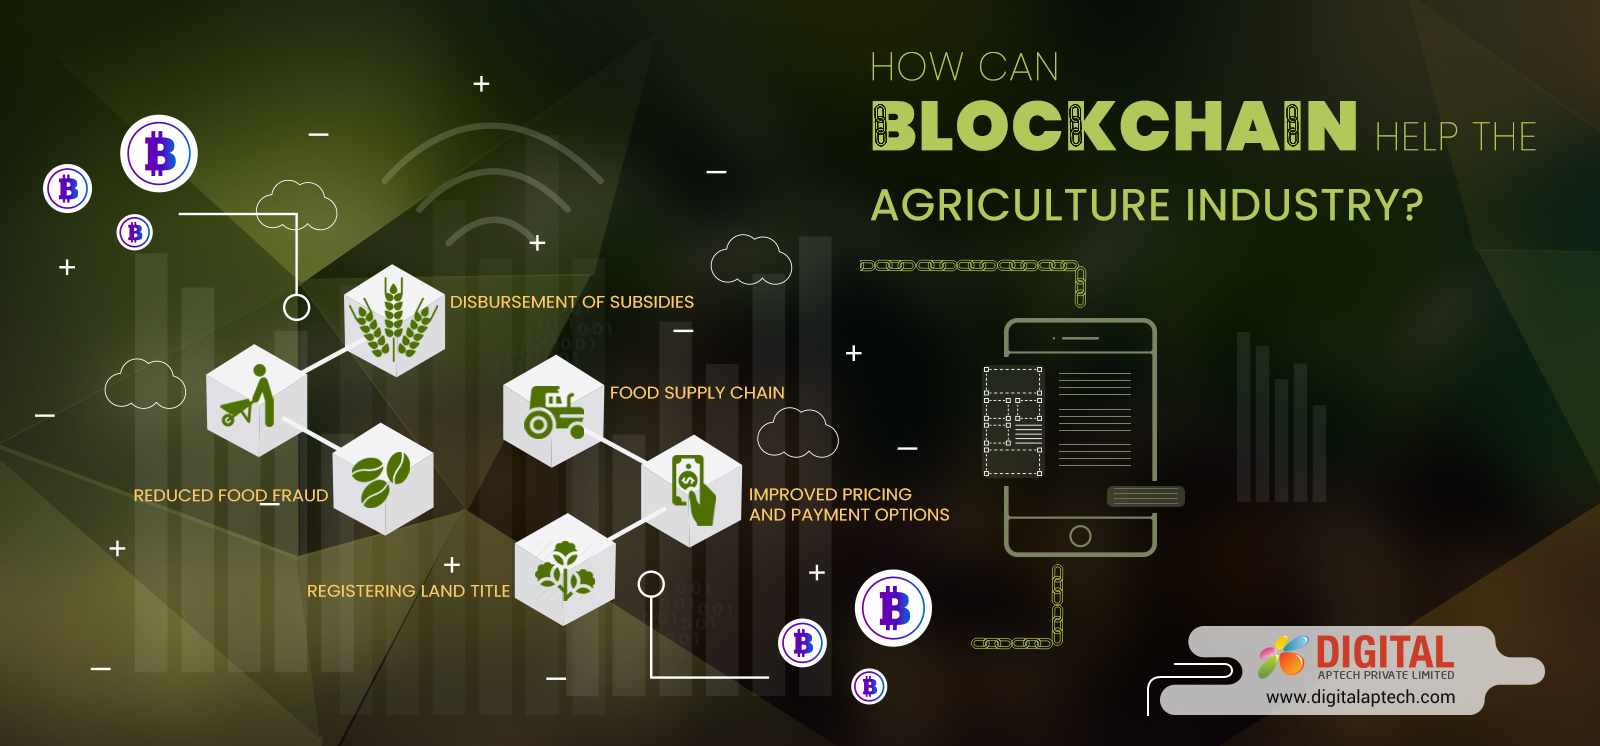 Applications of Blockchain in the Agriculture Industry